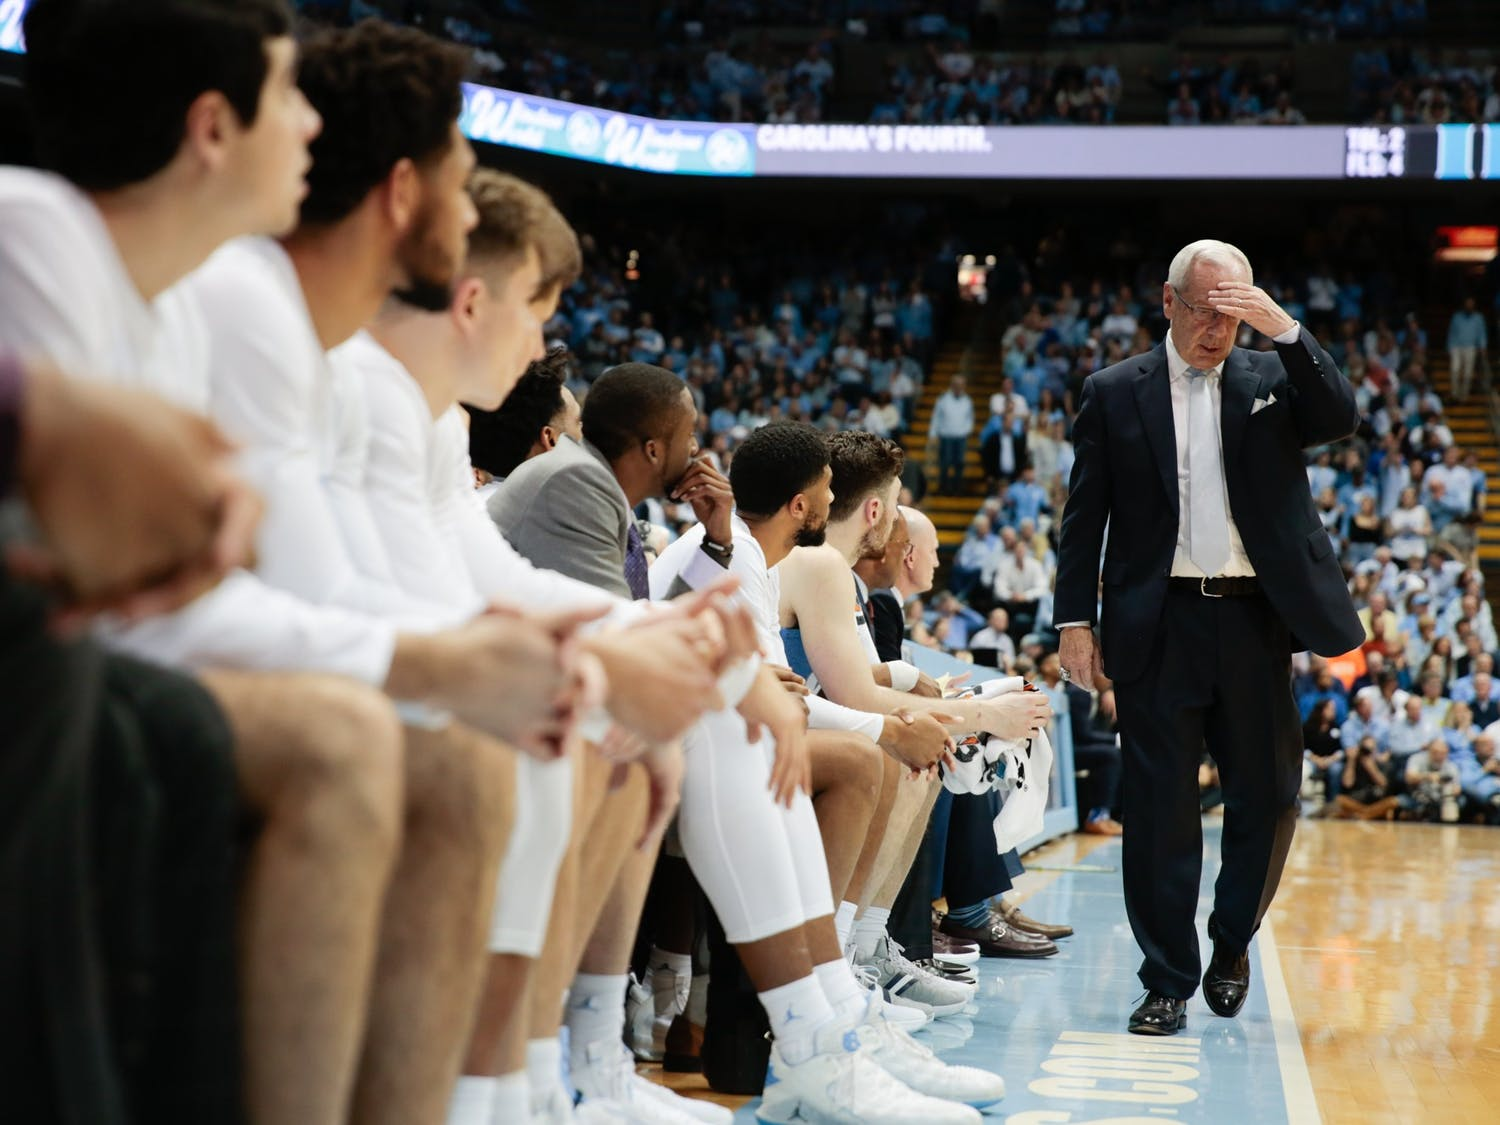 Head Coach Roy Williams reacts during a game against Duke in the Smith Center on Saturday, Feb. 8, 2020. The Tar Heels lost to the Blue Devils in overtime 98-96.